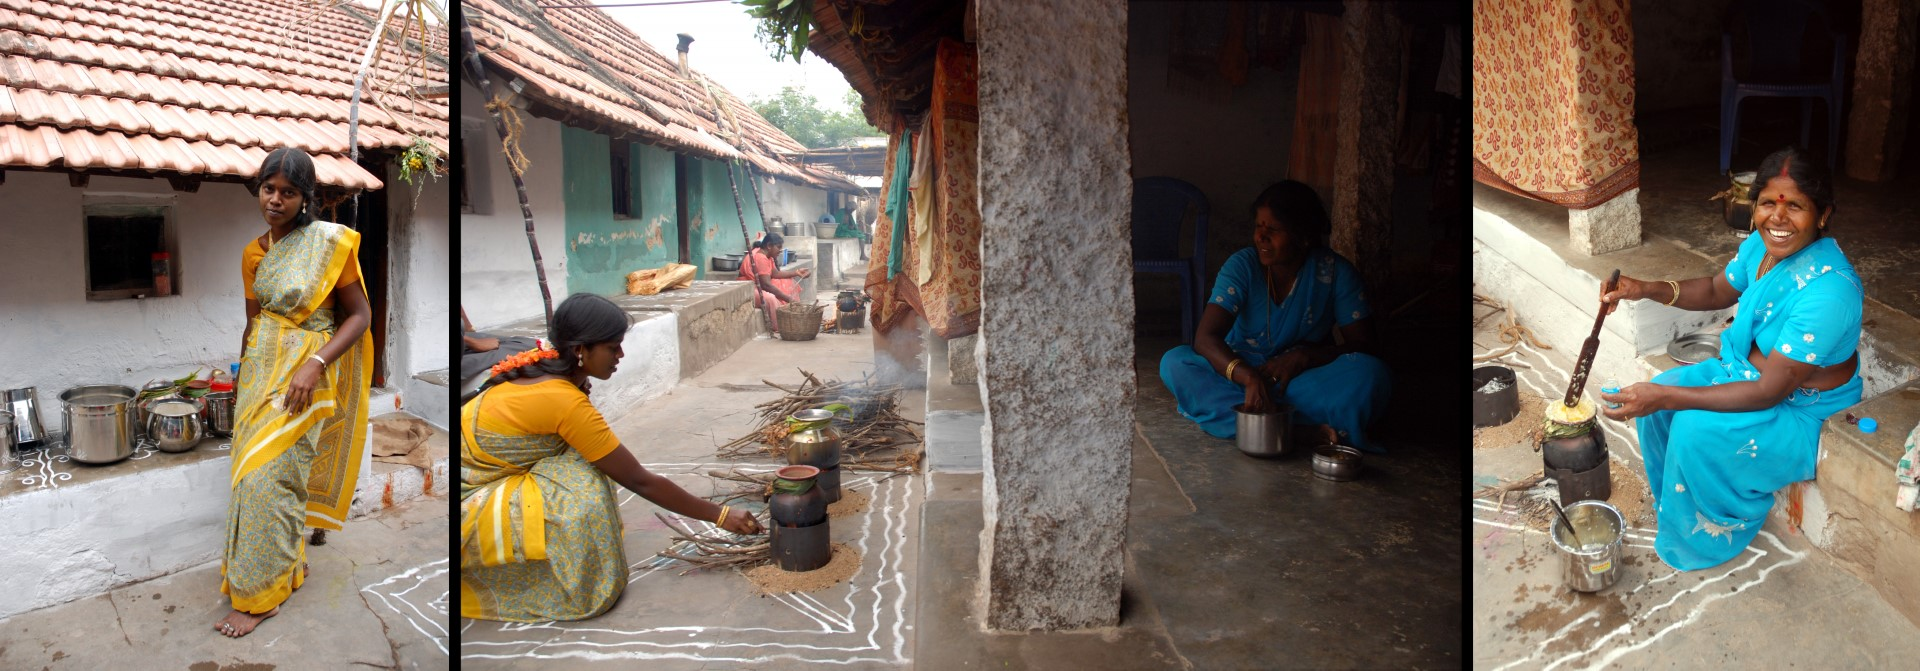 Indurani and Jayaretina making pongal in front of their home